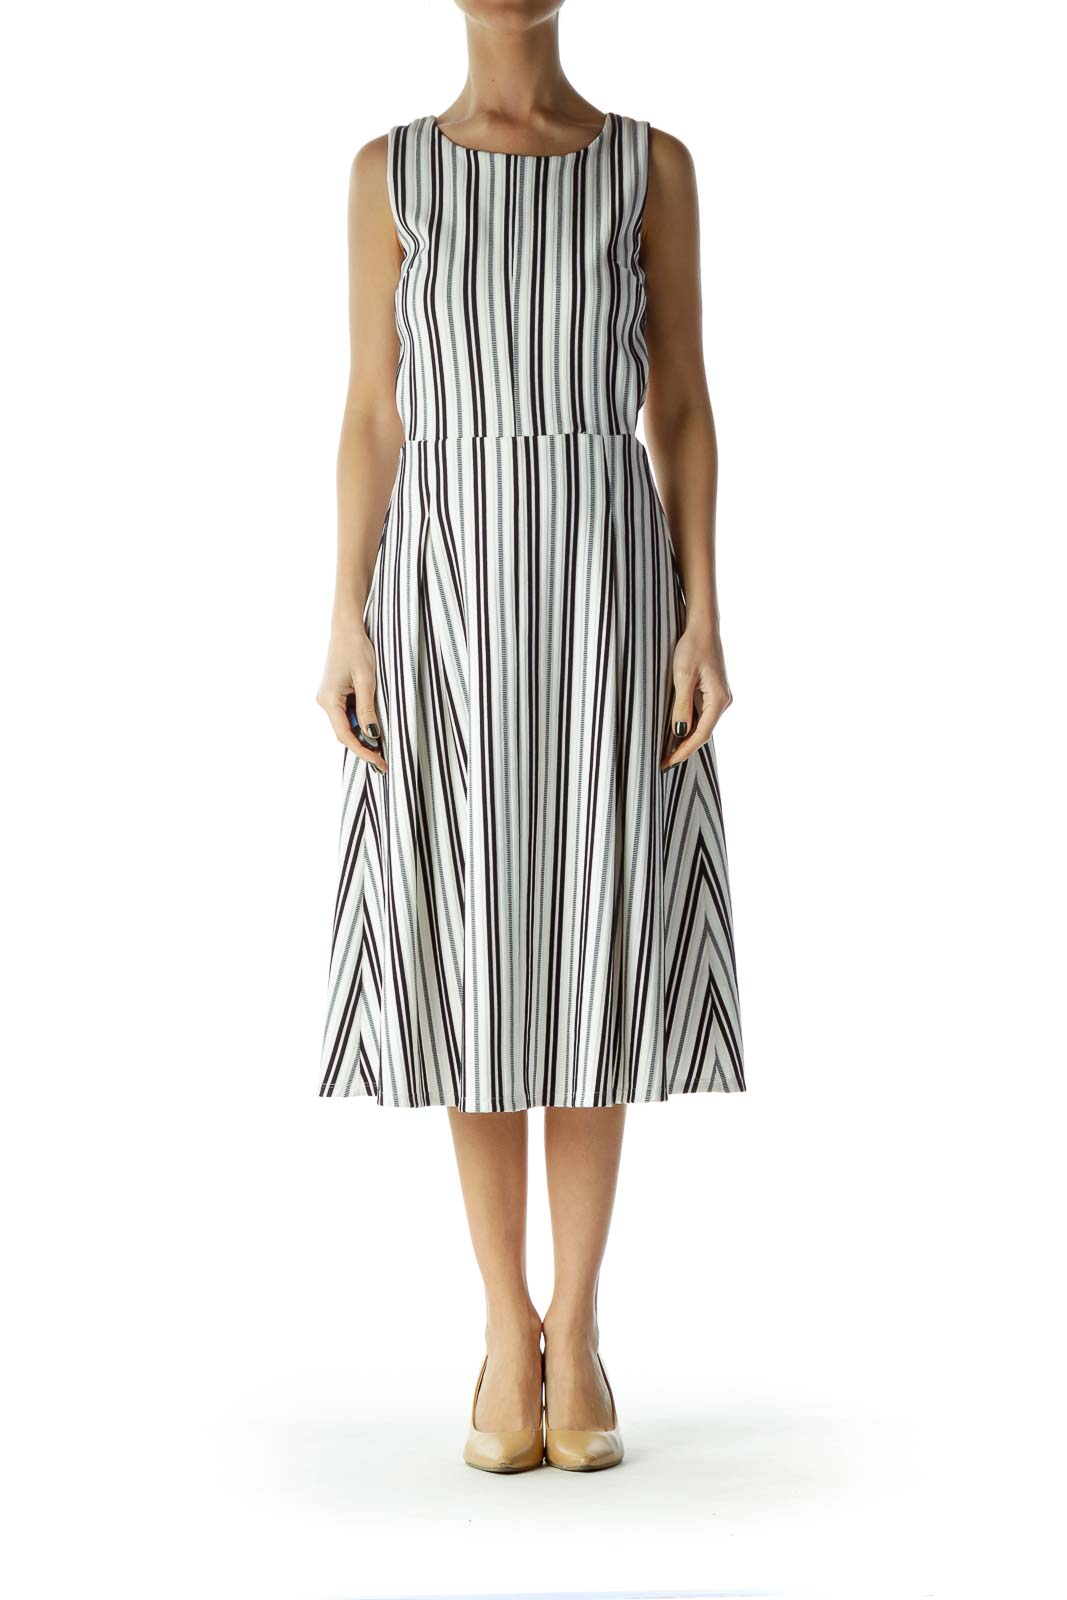 White and Black Striped Cut Out A-Line Dress